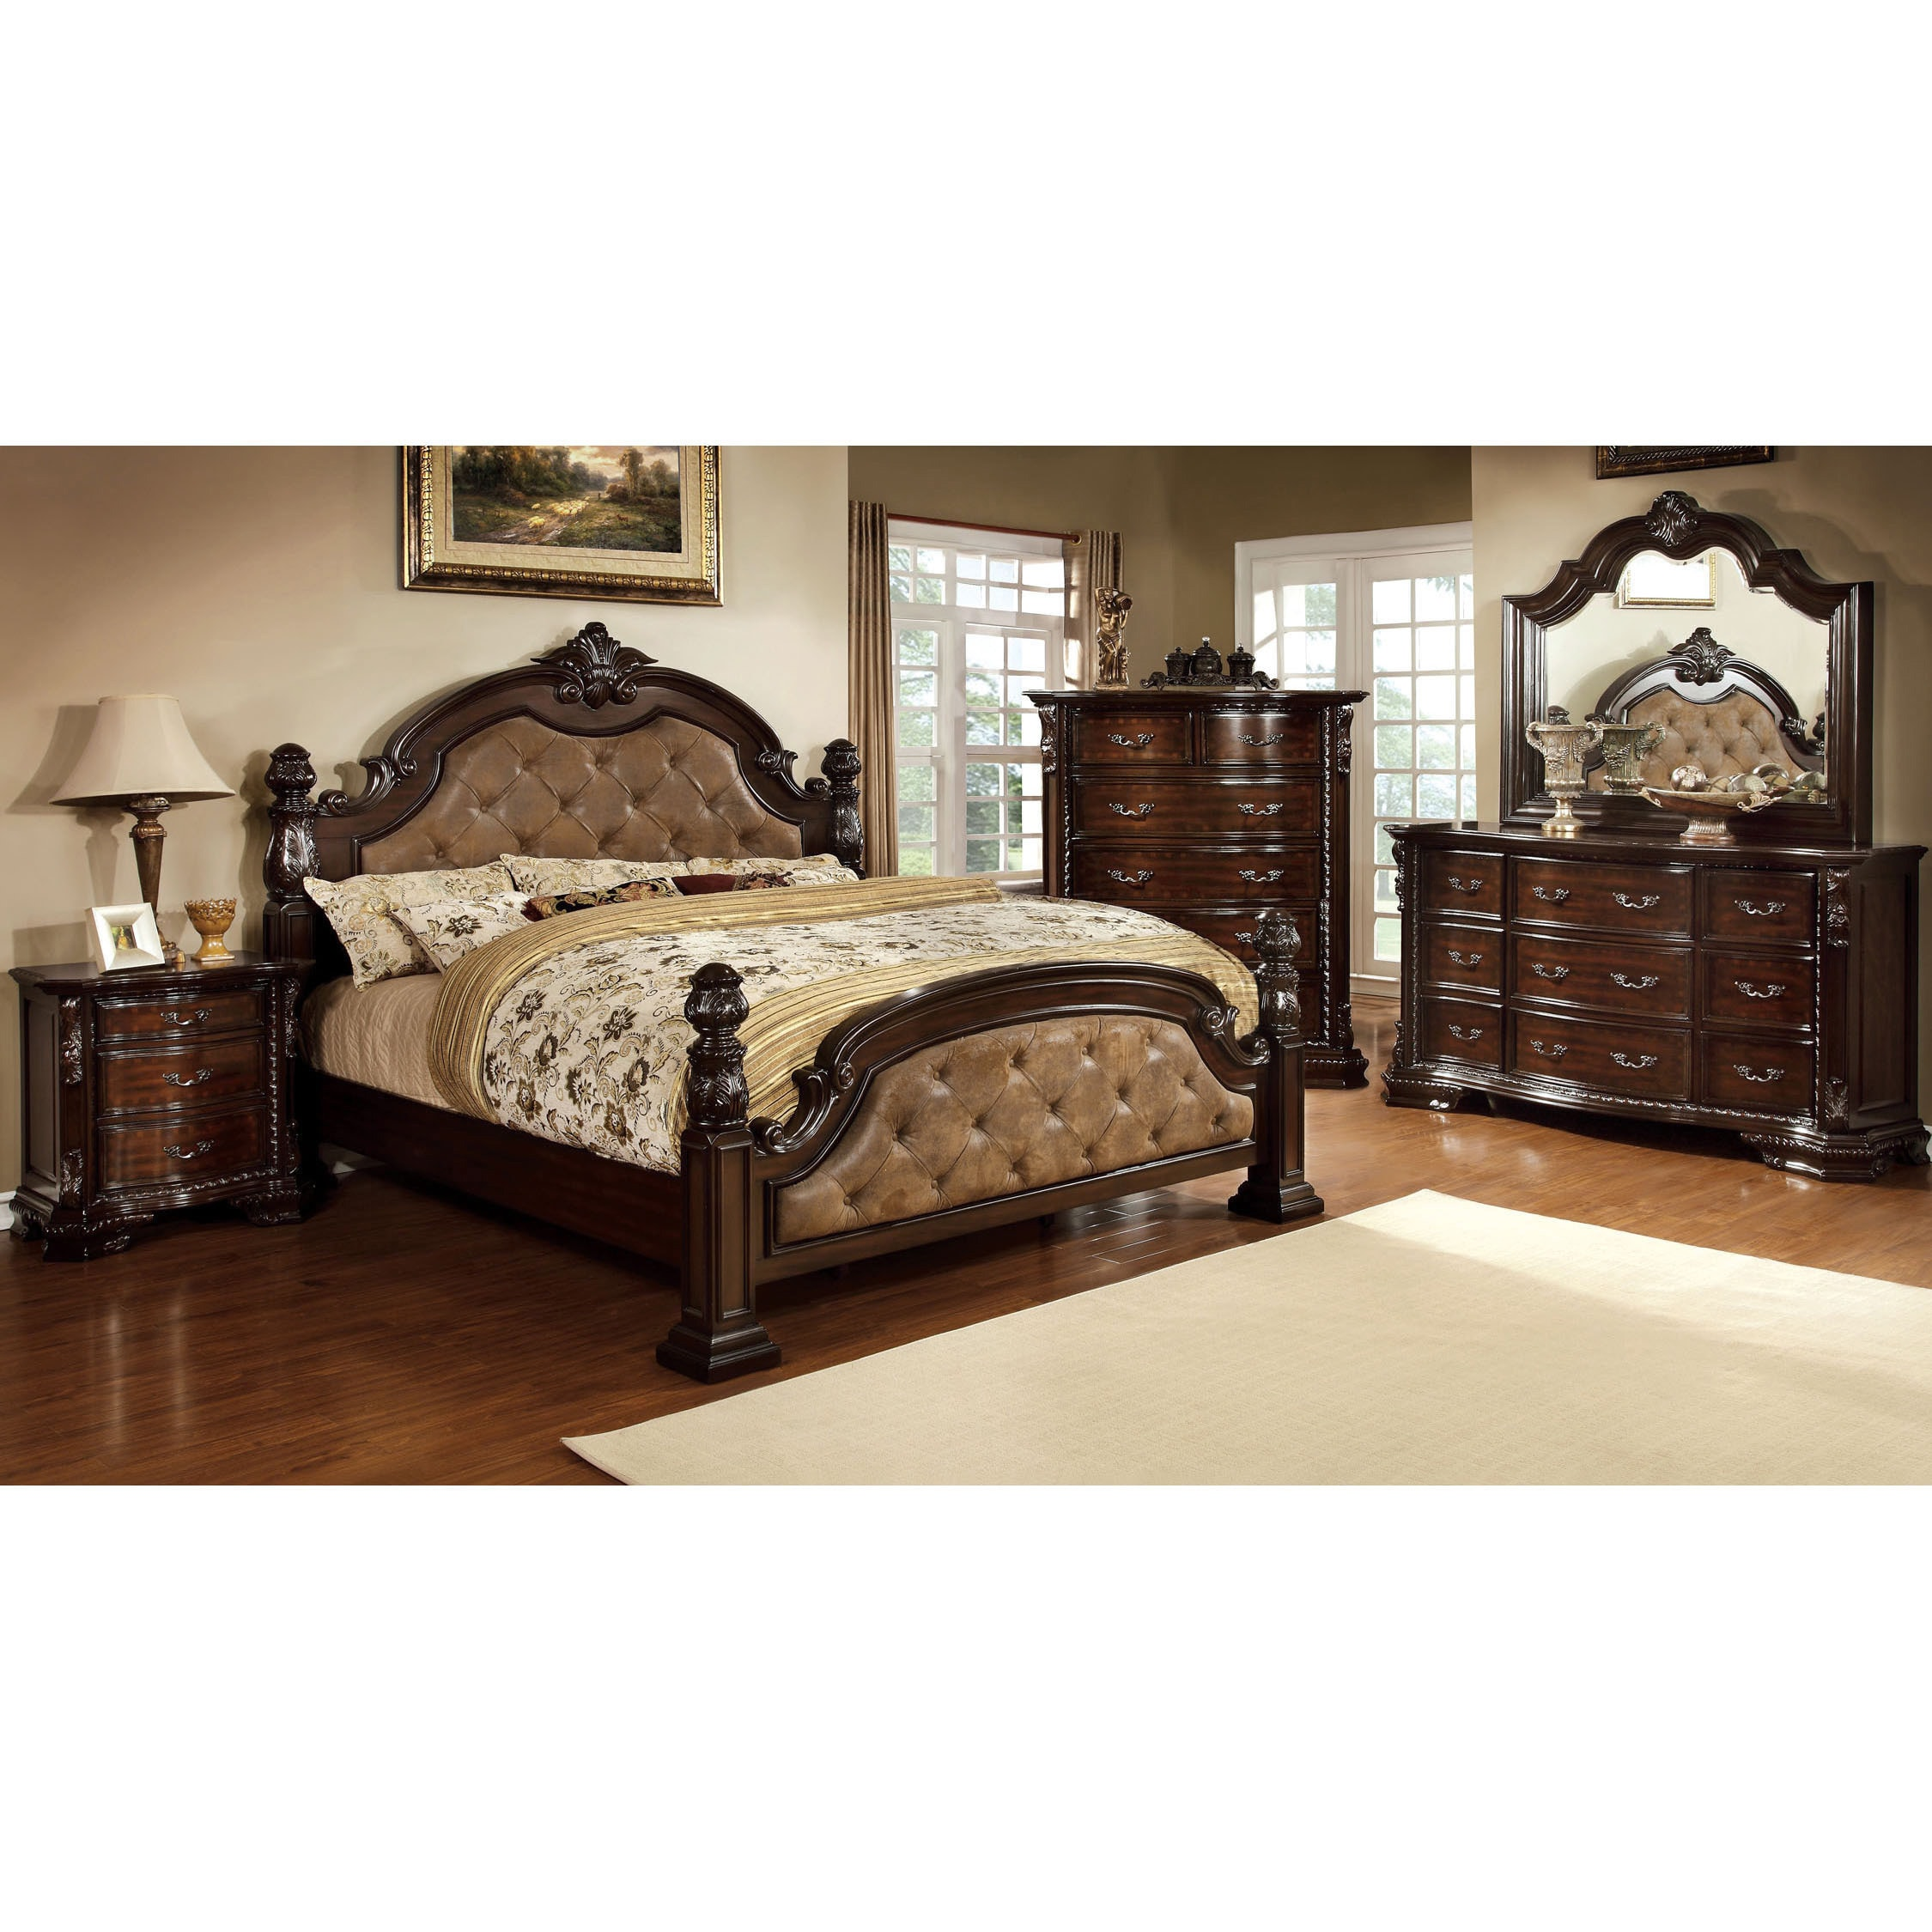 Shop For A Alexi King Dark Cherry 5pc Panel Bedroom At Rooms To Go Find Bedroom Sets That Will